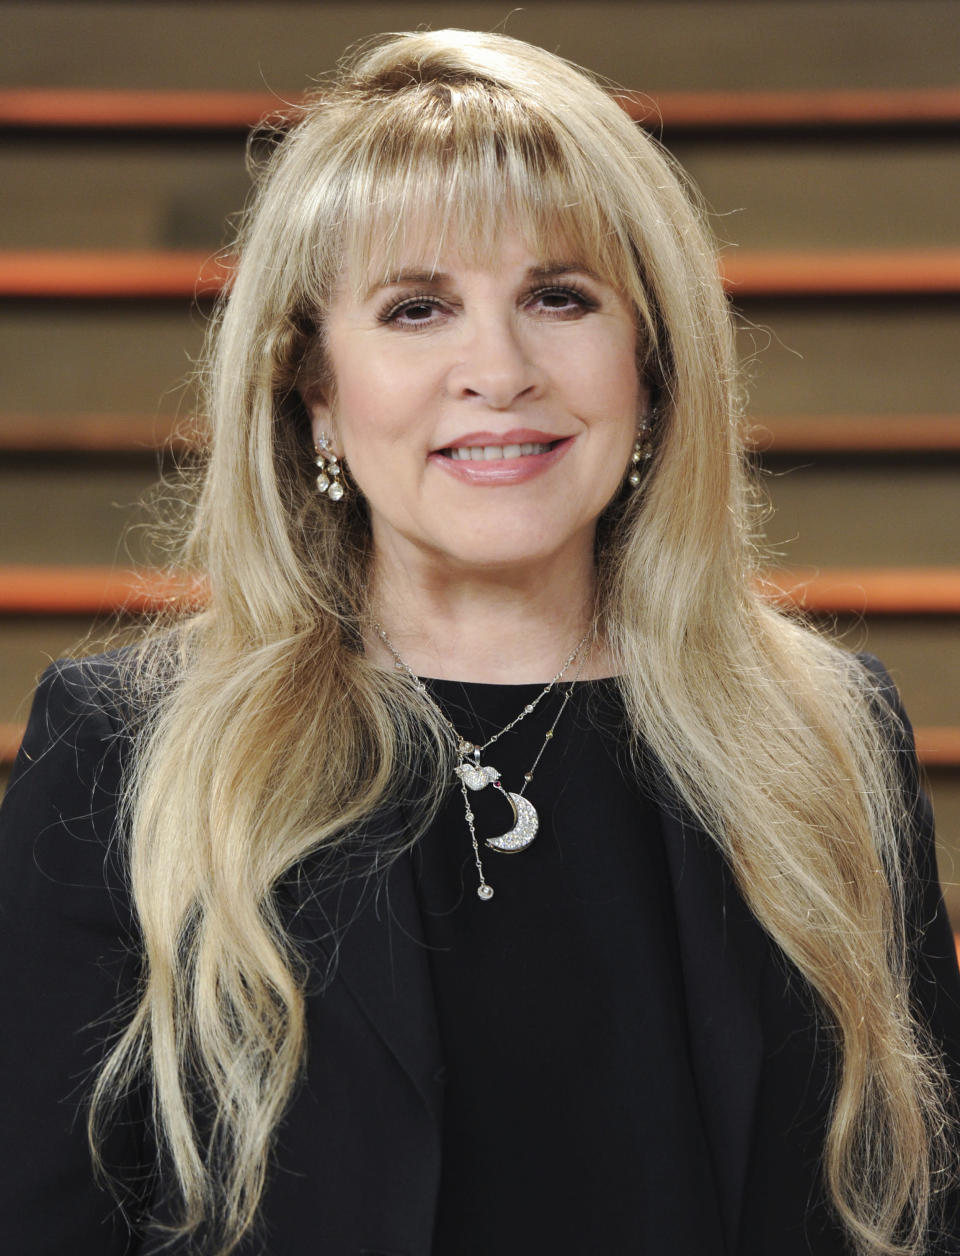 """FILE - Singer Stevie Nicks attends the 2014 Vanity Fair Oscar Party in West Hollywood, Calif., on March 2, 2014. Nicks has spent the last 10 months homebound, mainly due to the coronavirus pandemic. During that time, she recorded the new single """"Show Them the Way"""" and edited her new concert film """"Stevie Nicks 24 Karat Gold The Concert."""" The song will be released Friday and the concert film, recorded over two nights during Nicks' 2016-17 """"24 Karat Gold"""" tour, will be available at select theaters and drive-ins on Oct. 21 and 25. (Photo by Evan Agostini/Invision/AP, File)"""